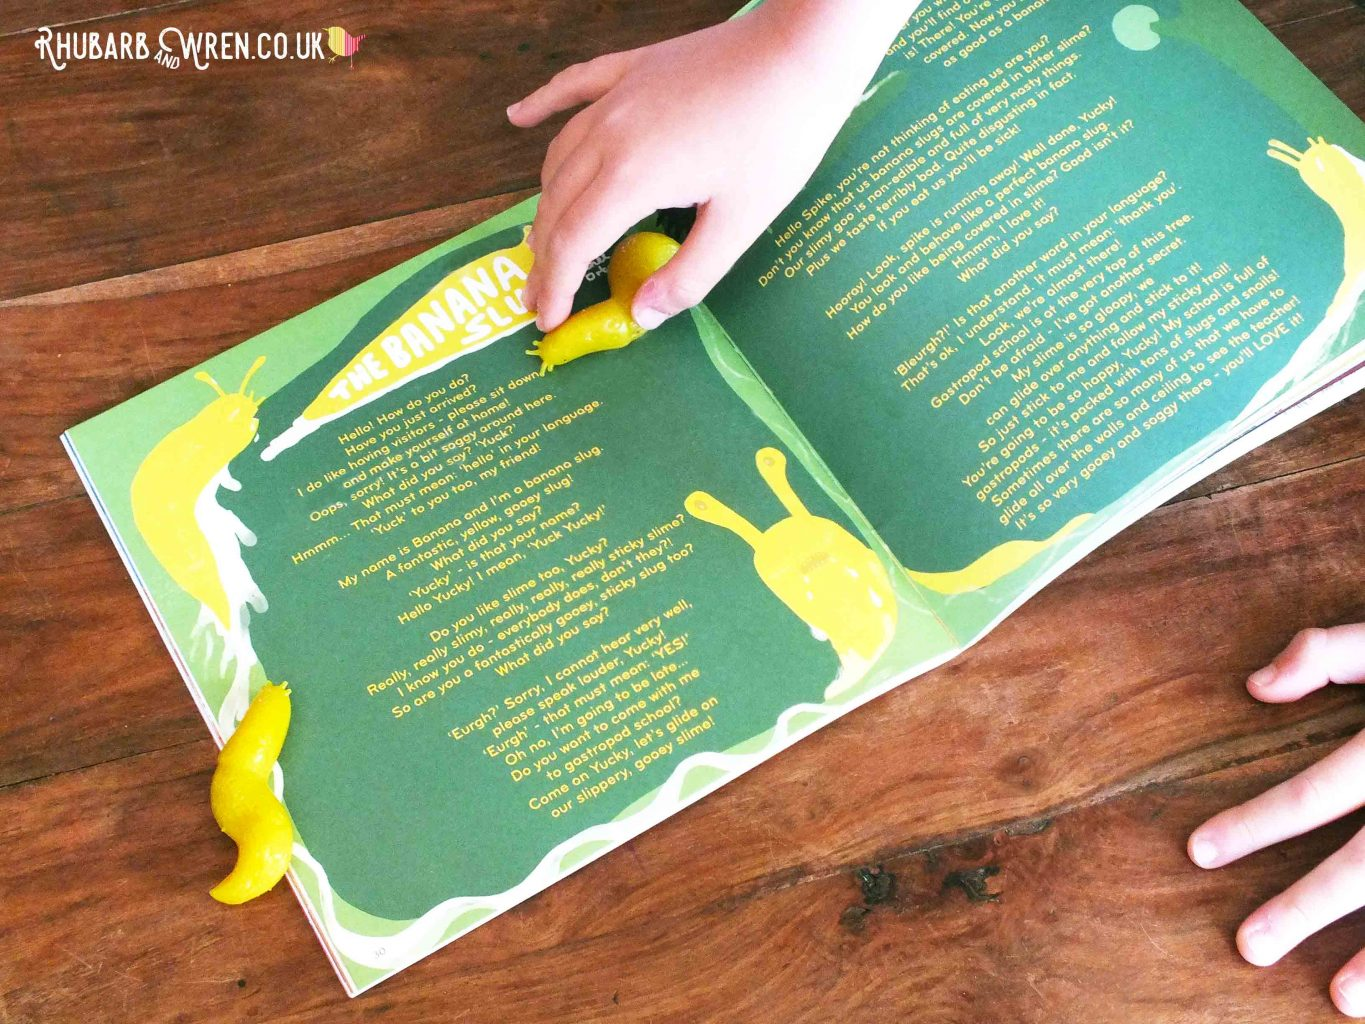 Okido magazine open to spread with 'Banana Slug' poem. Child's hand and rubber slug.